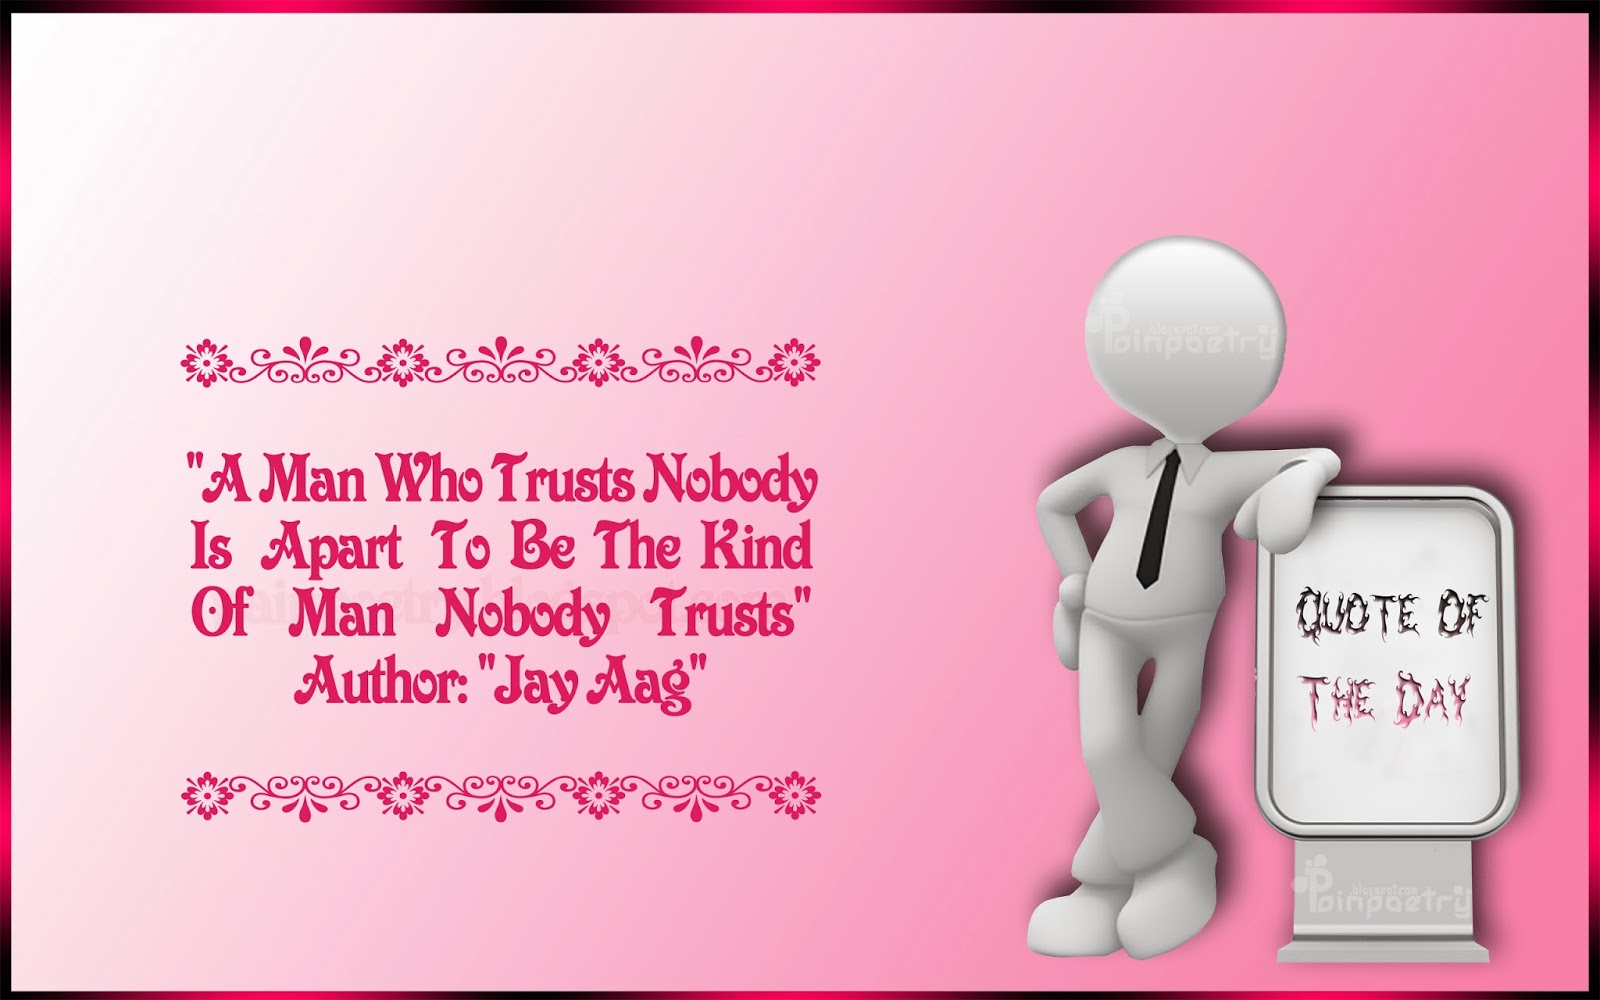 Quotes-Of-The-Trust-Image-Photo-Wallpaper-HD